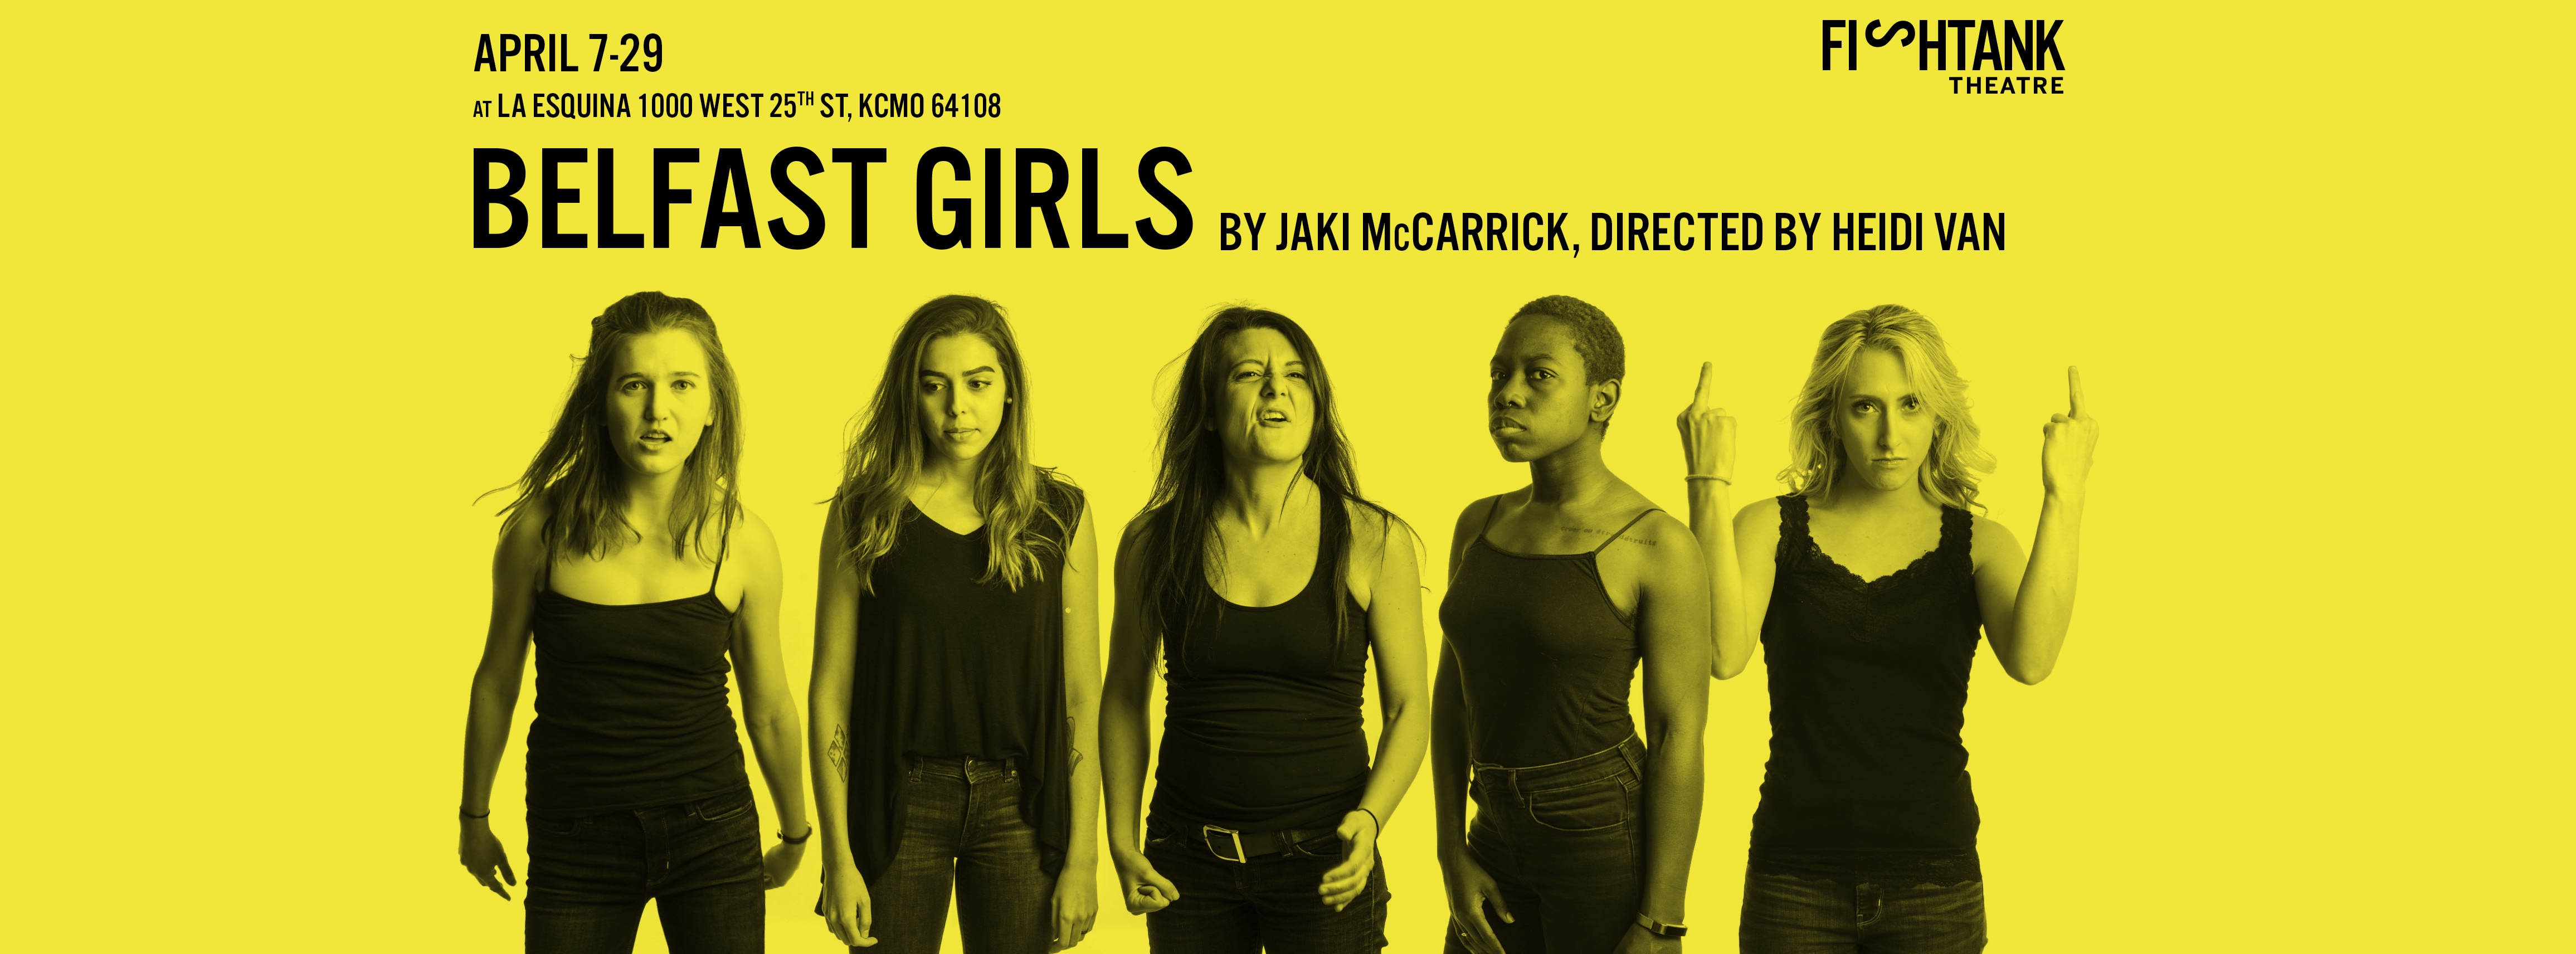 BELFAST GIRLS Photo BANNER.png